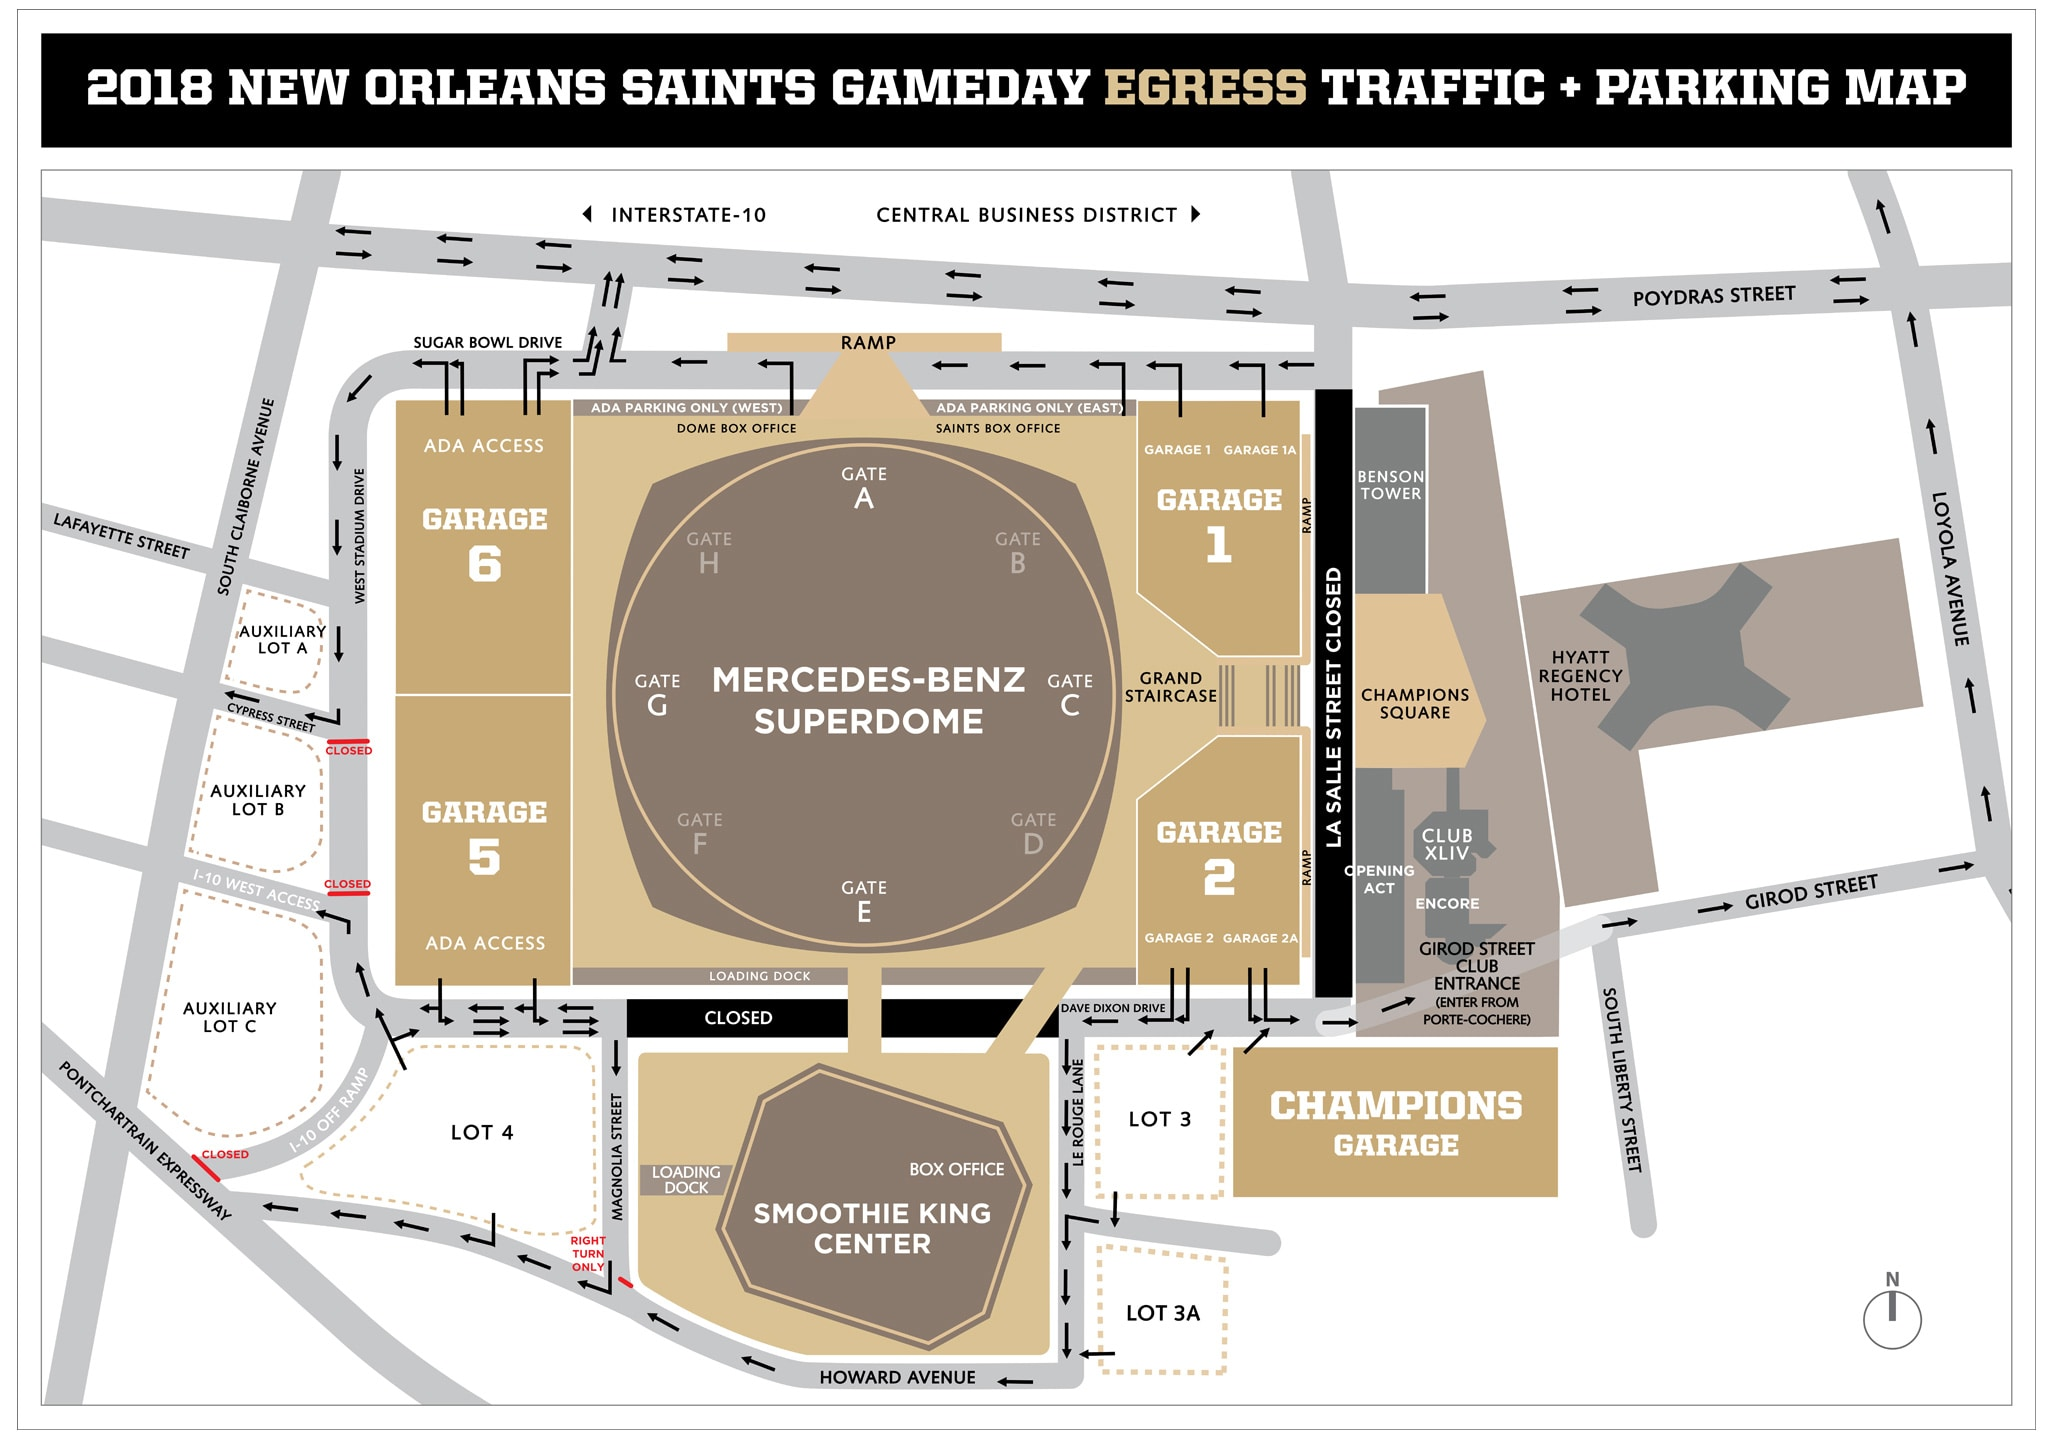 New Orleans Saints Gameday Egress Traffic & Parking Map